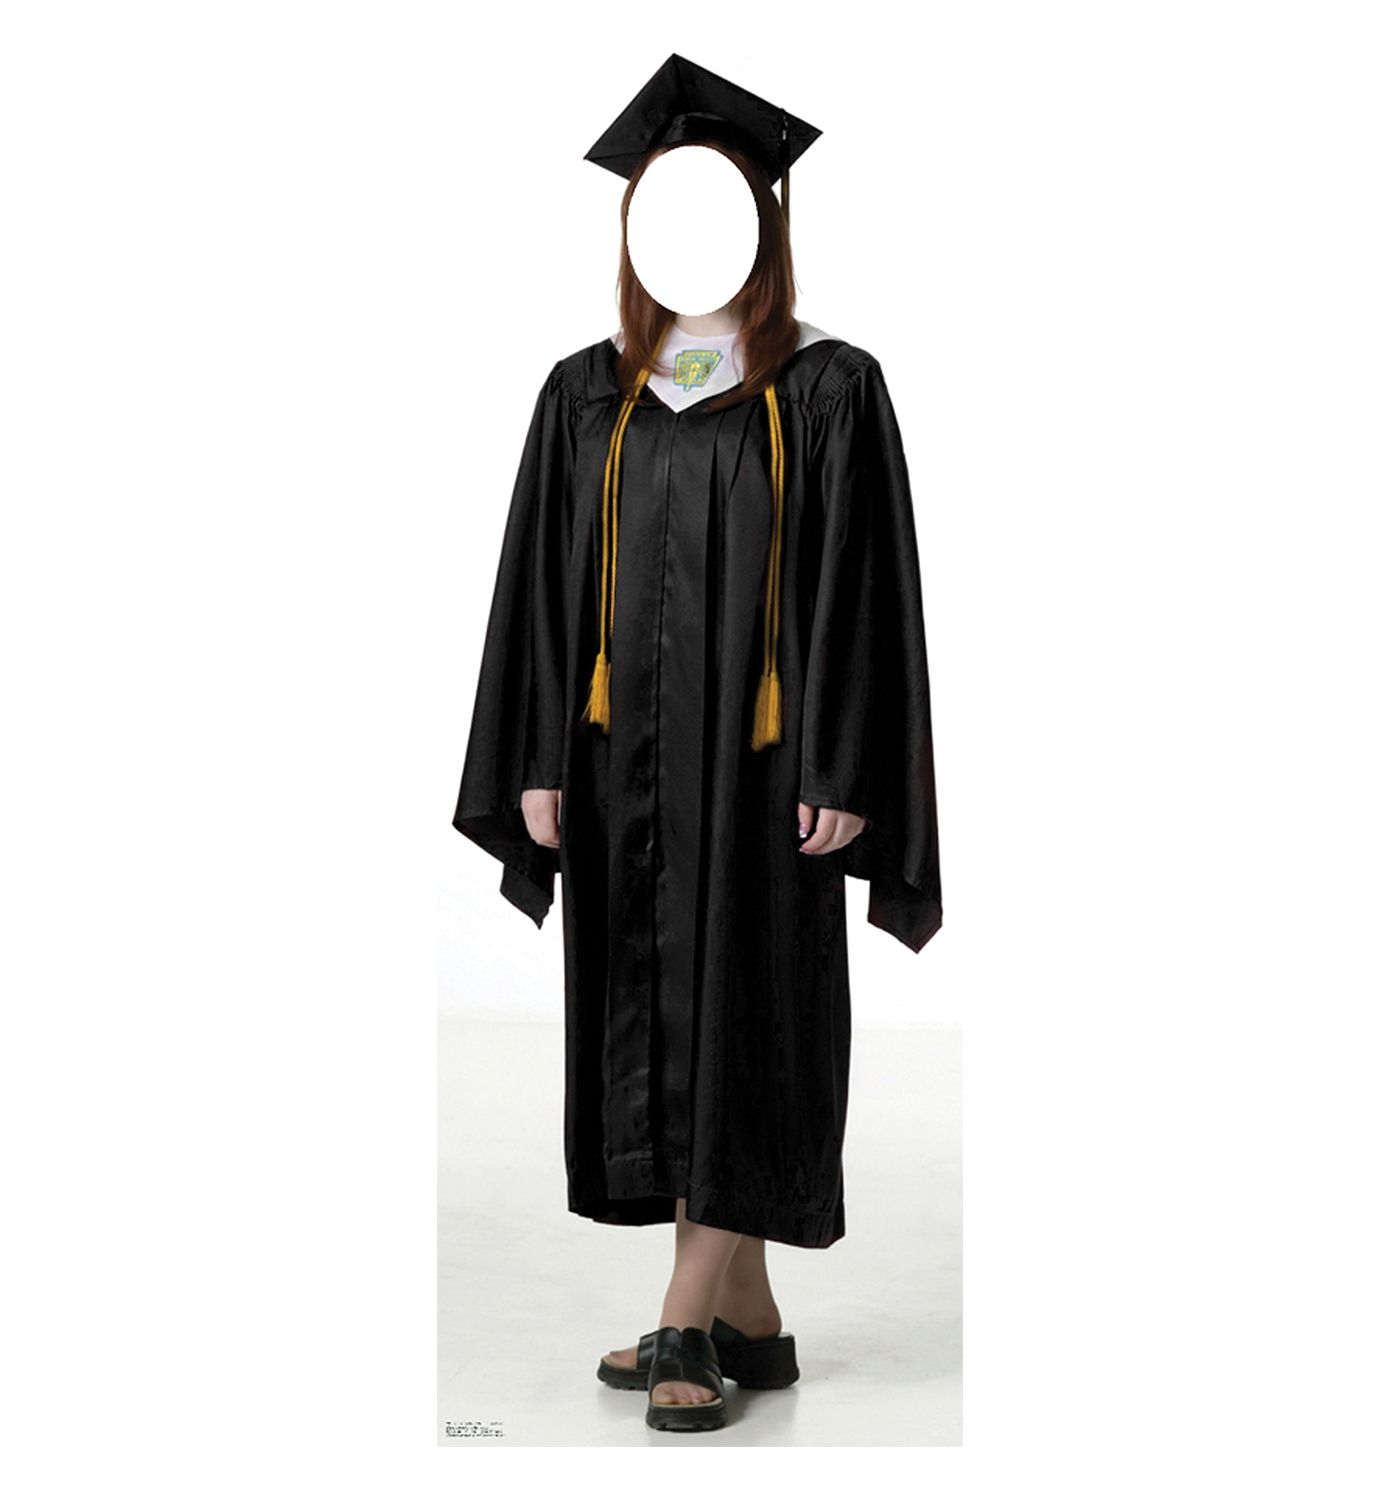 Female Graduate Black Cap and Gown | Products, Gowns and Cap d'agde